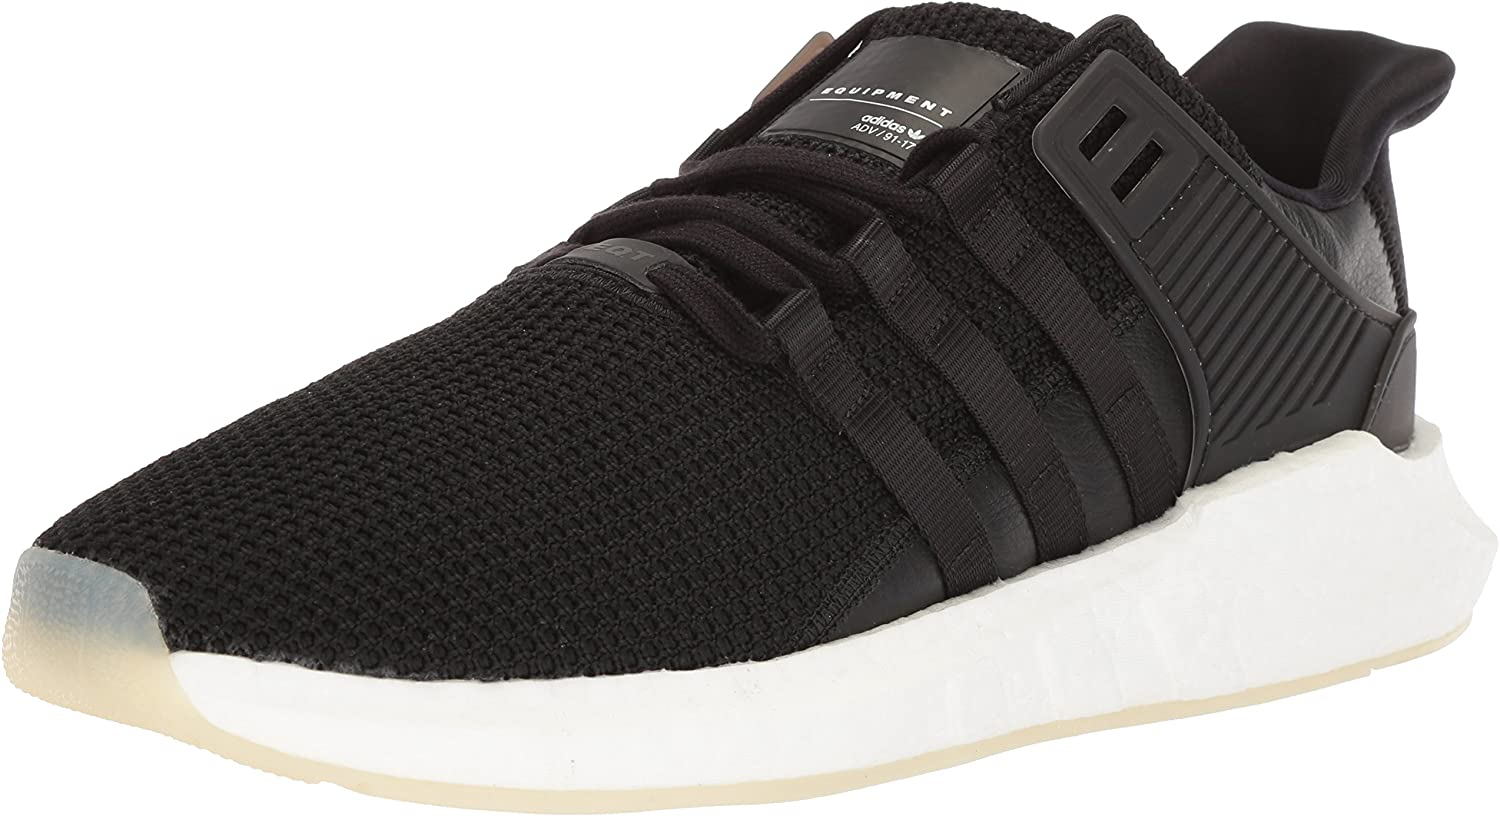 Adidas Originals Herren EQT Support 93 17, wei, 47.5 EU